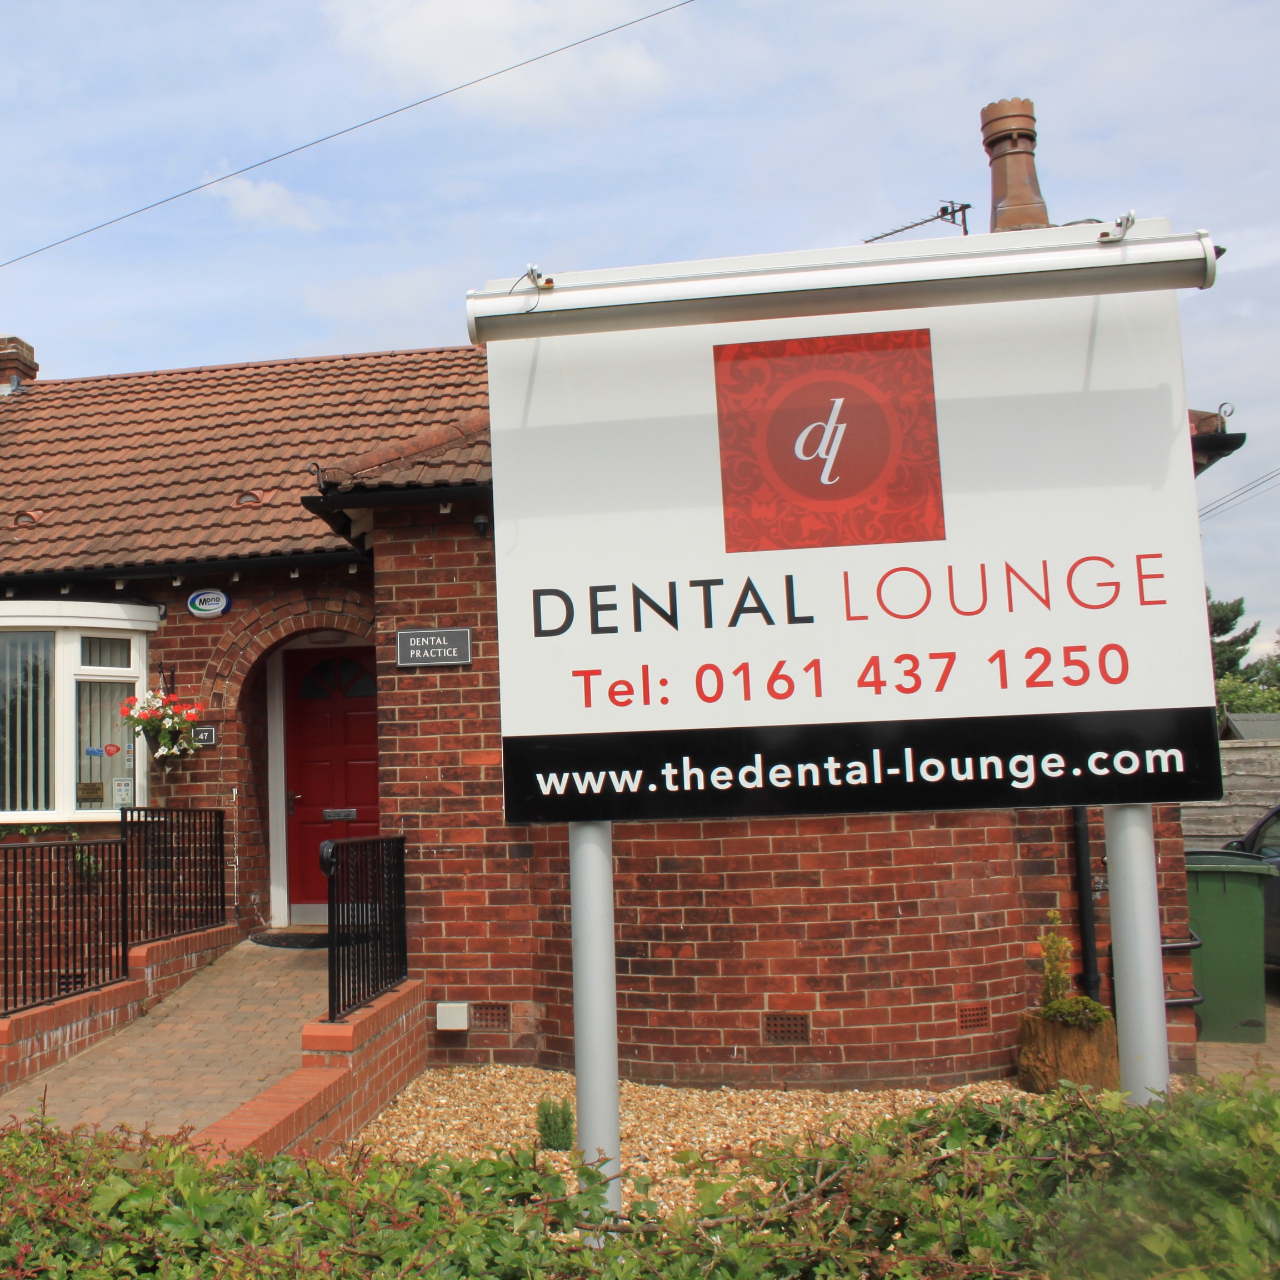 The Dental Lounge